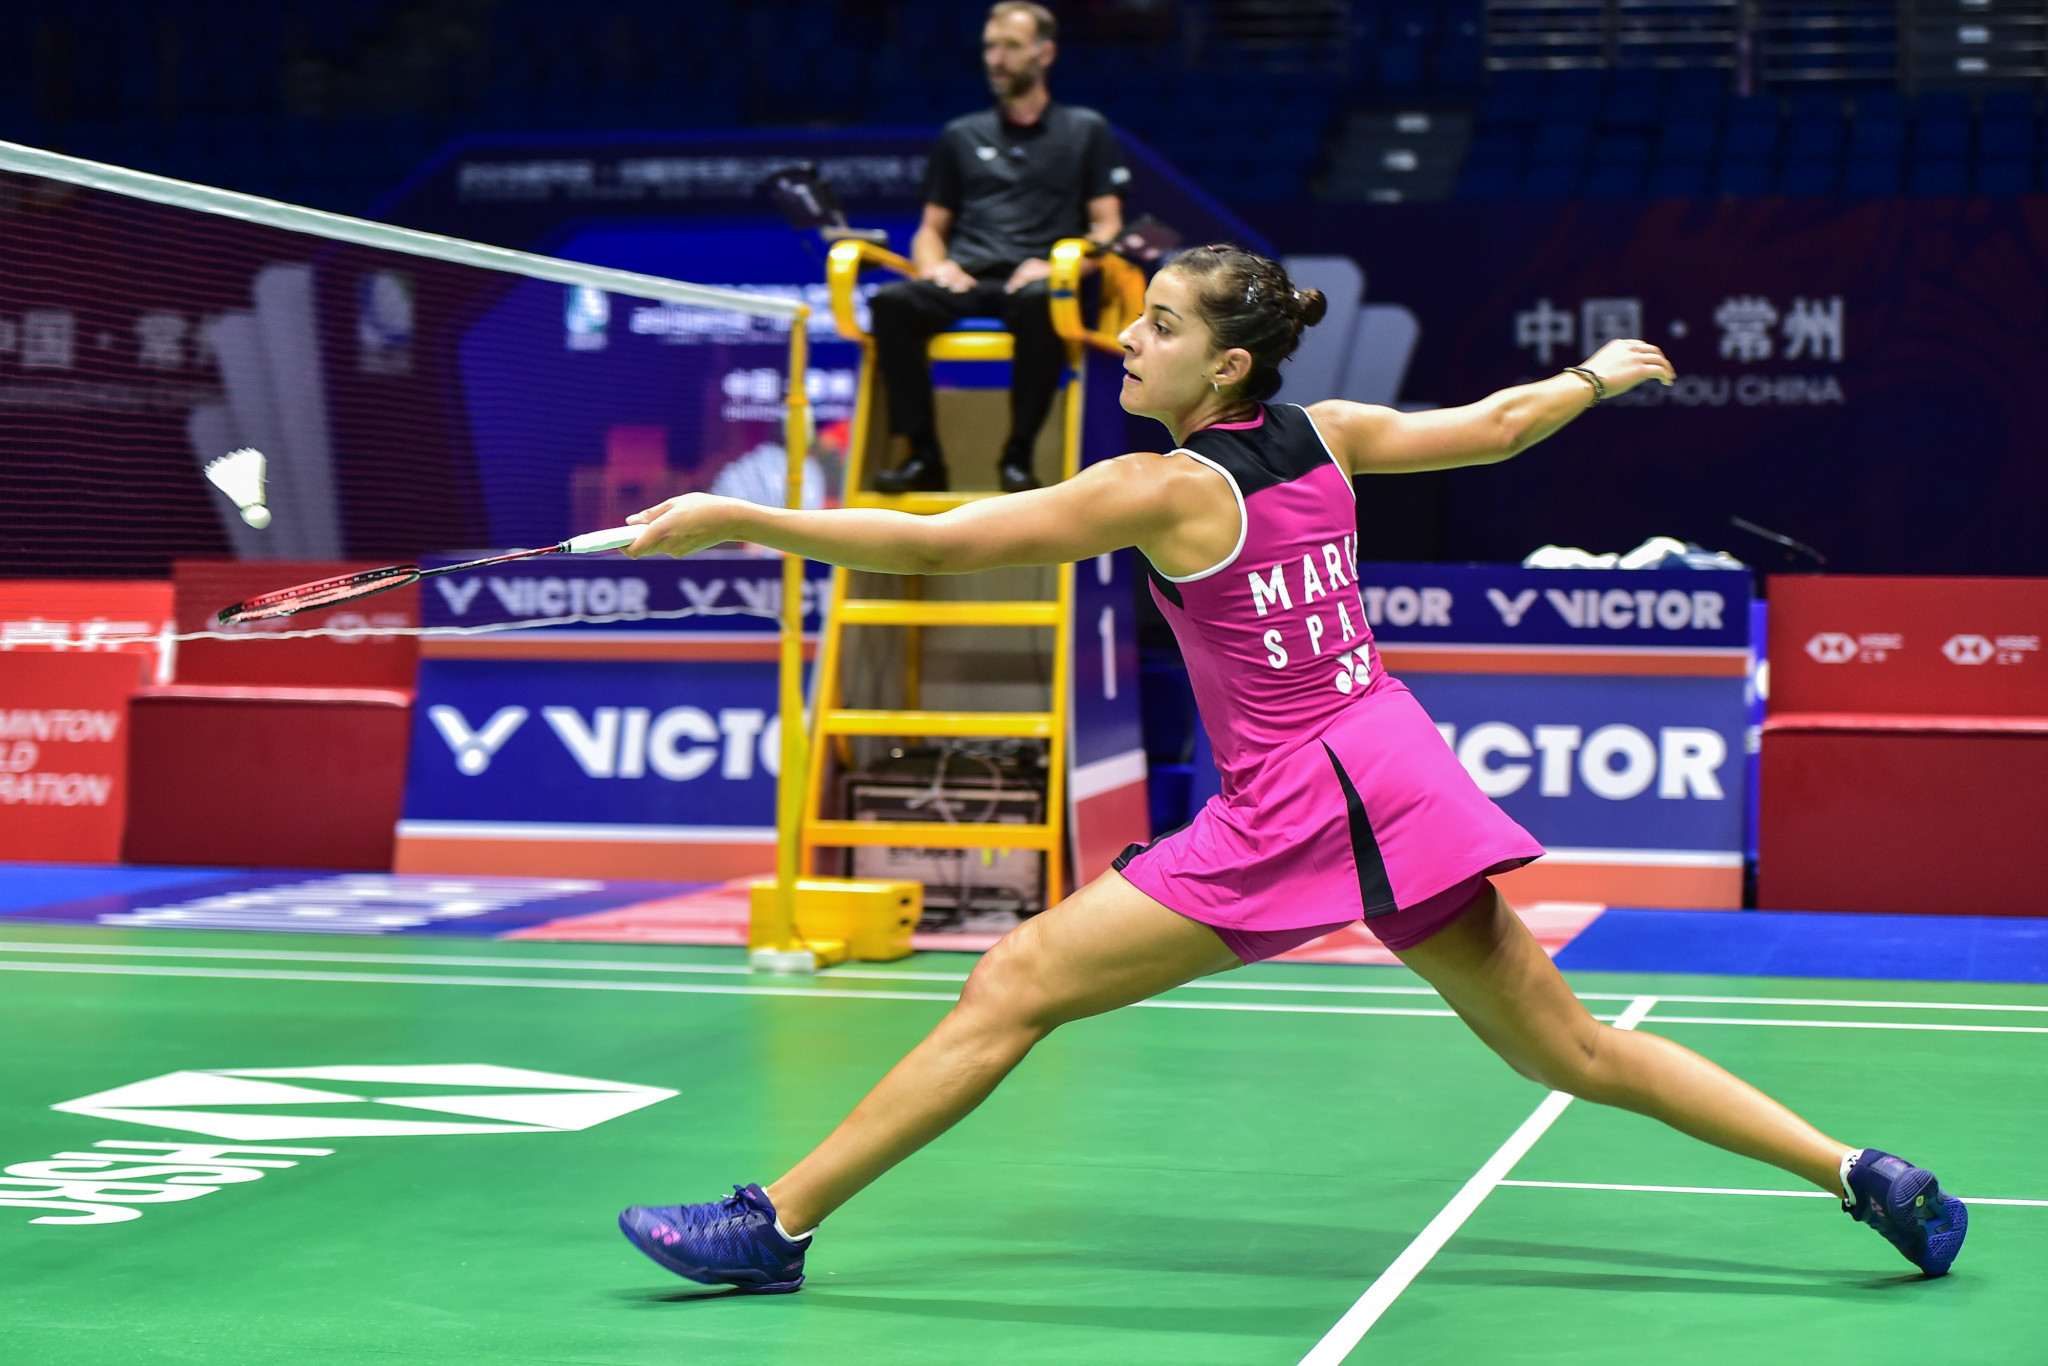 Olympic champion Marín through to semi-finals at BWF China Open